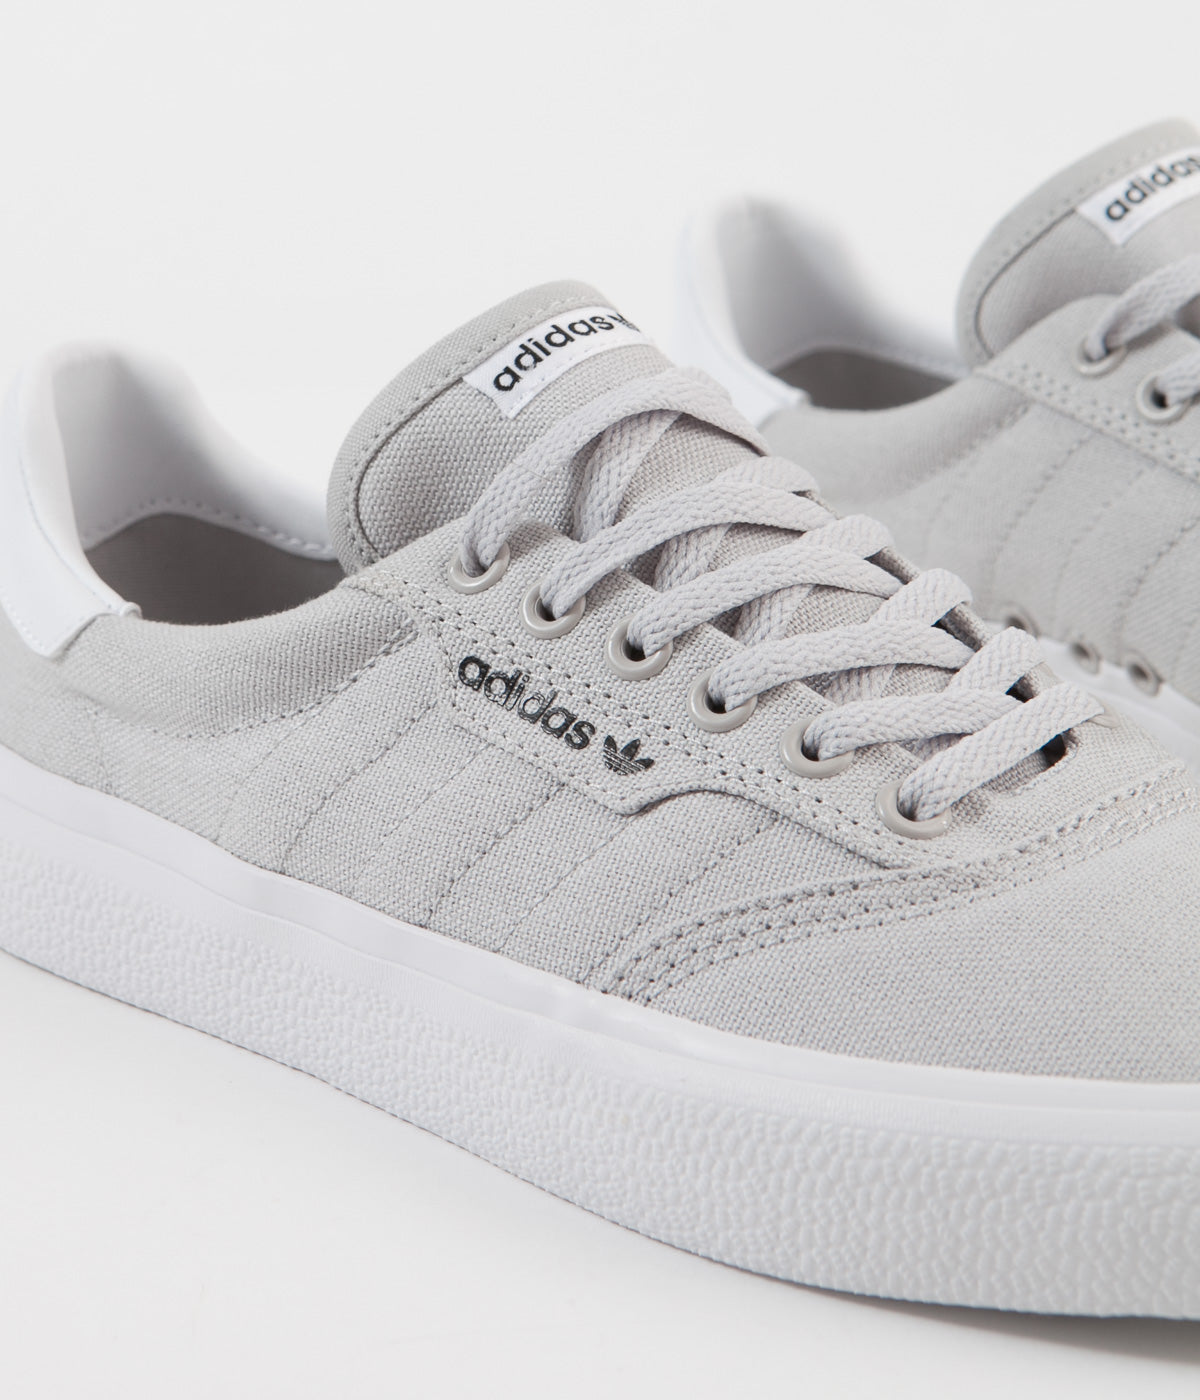 Adidas 3MC Shoes - Light Solid Grey / Light Solid Grey / White